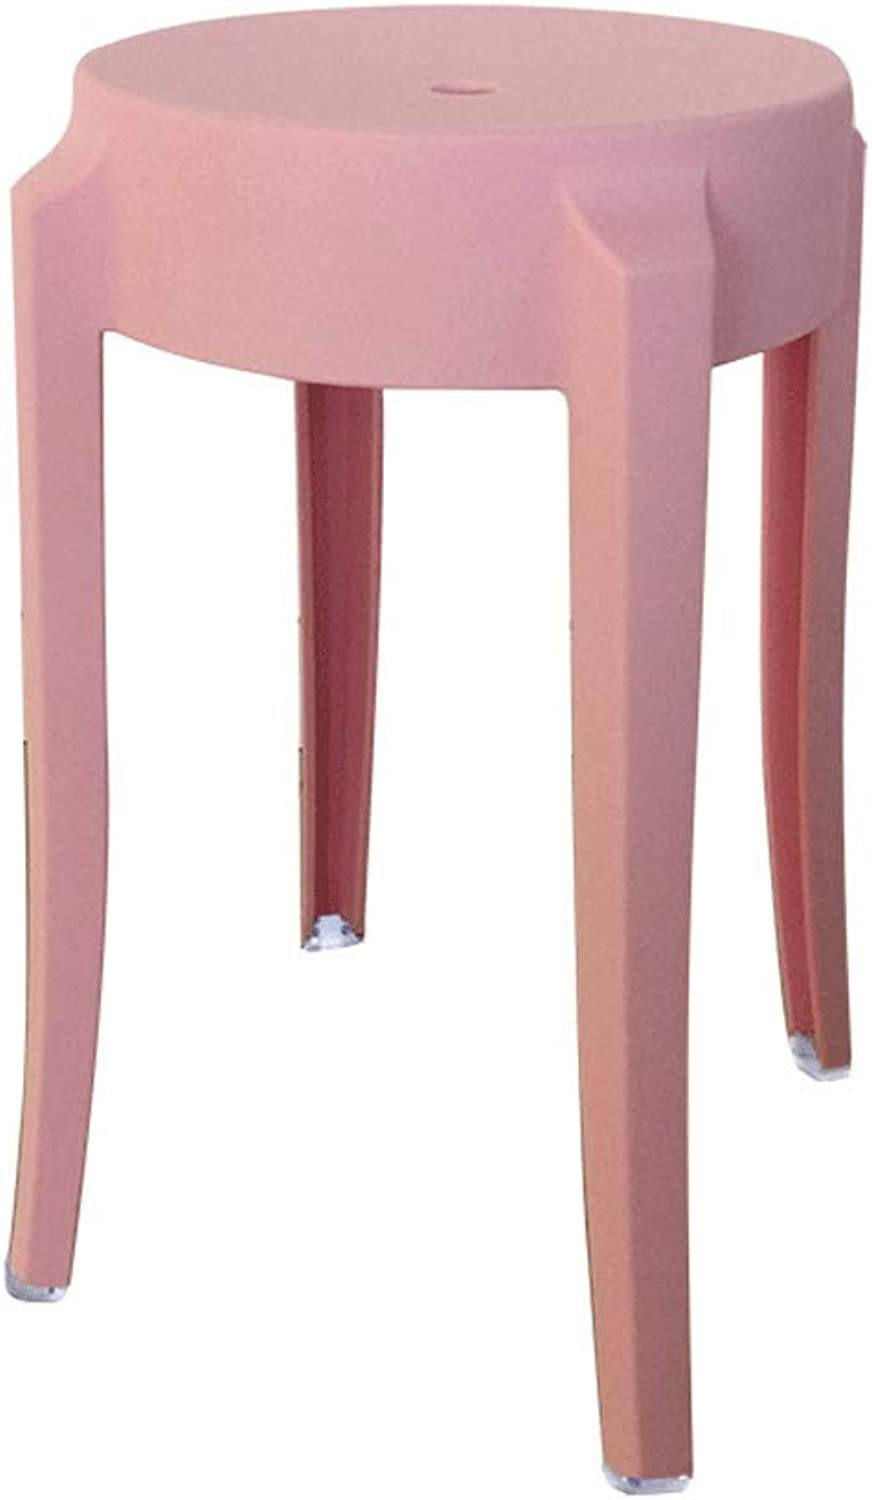 SLH Pink Stool European Plastic Stool Home High Stool Creative Dining Table Stool